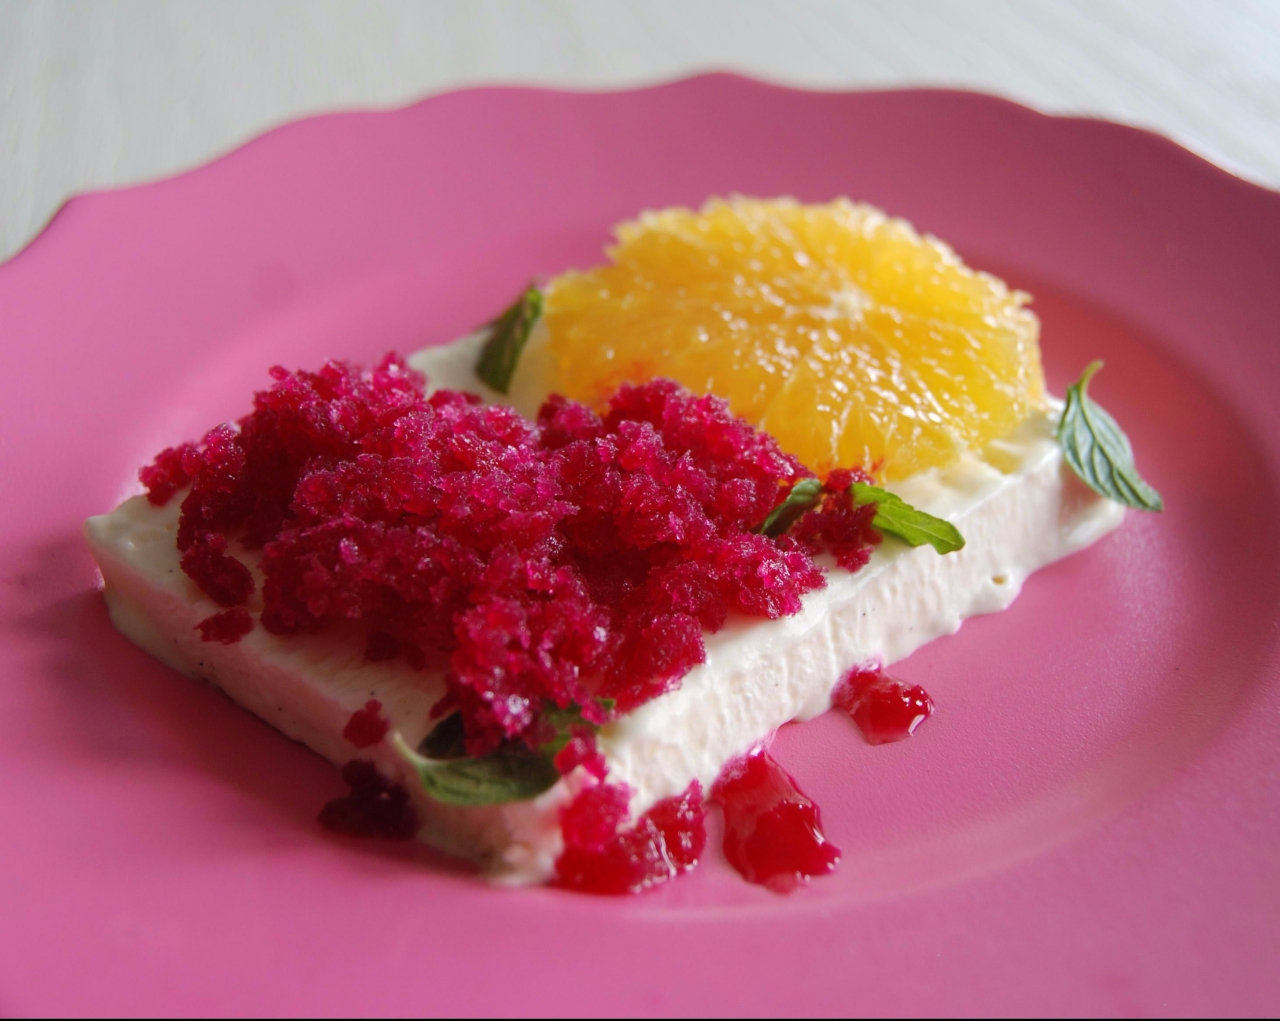 Vanilla Parfait with Orange Granita recipe from Meyers and Chang at Home Cookbook